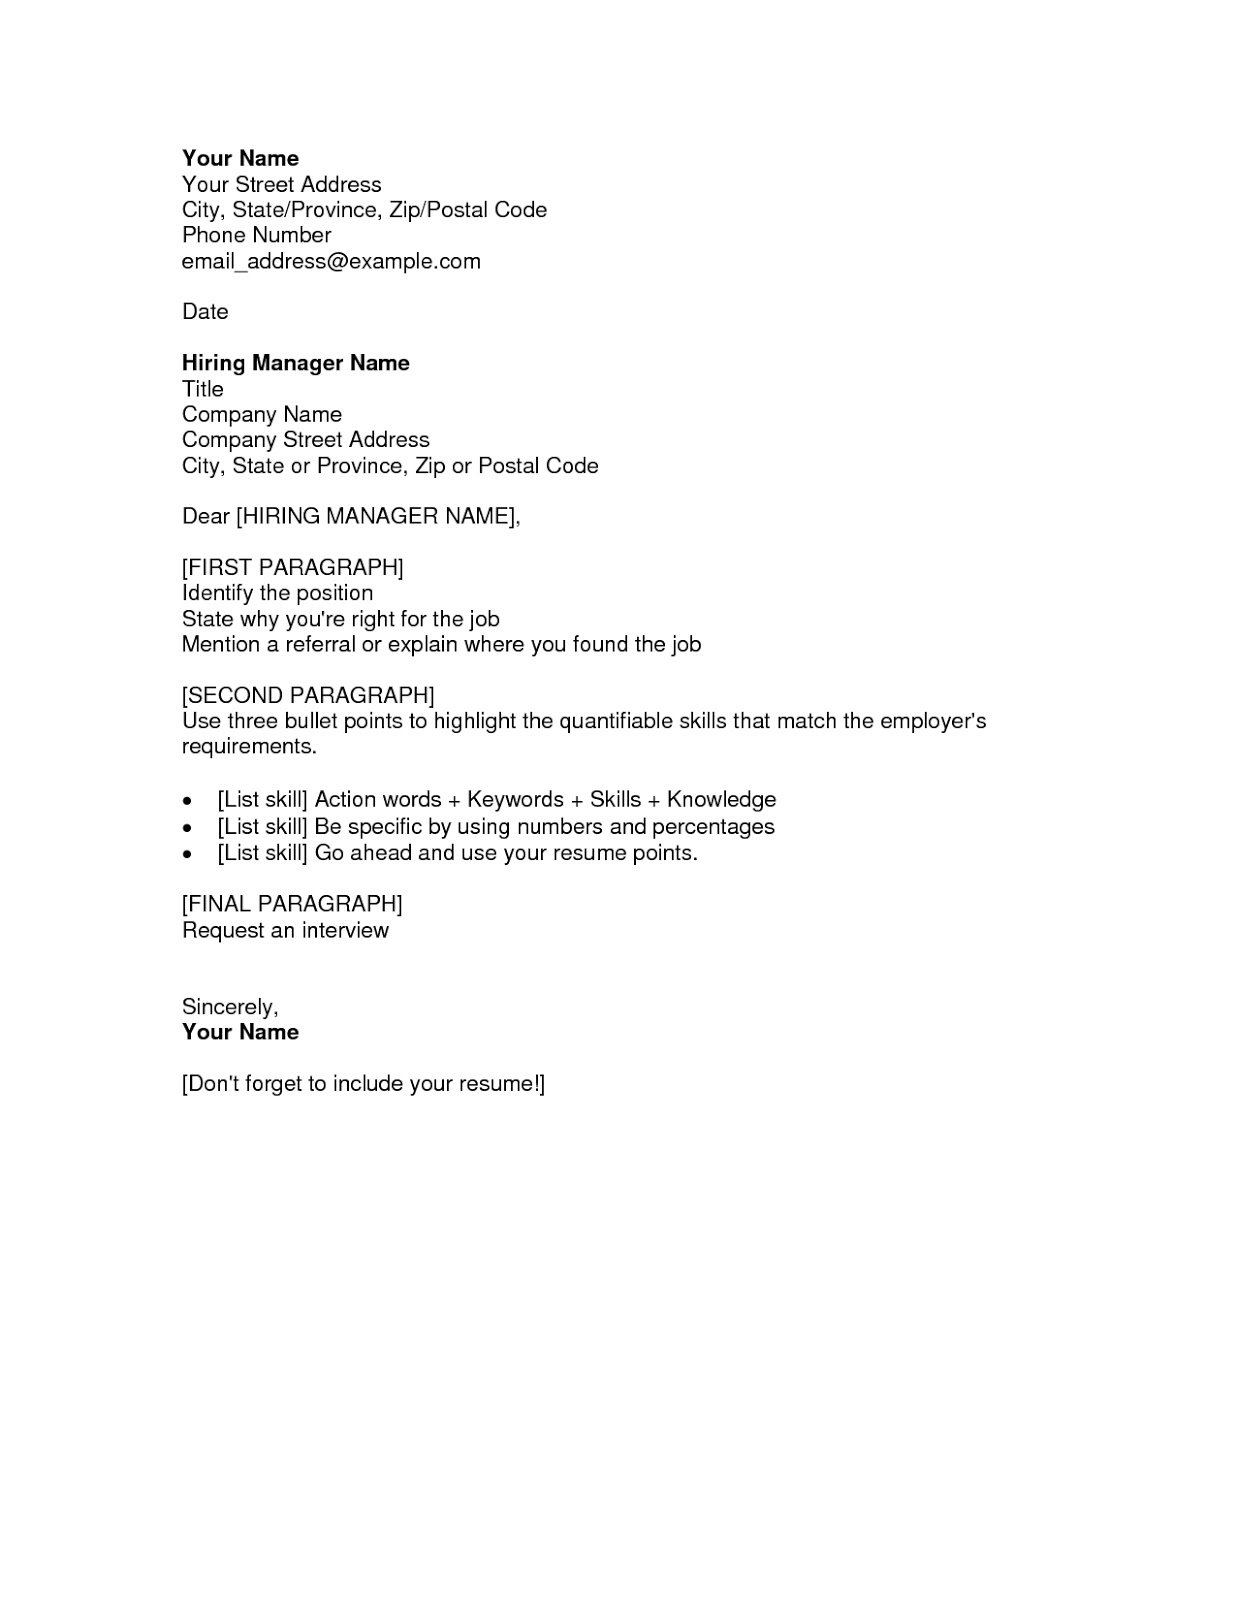 Cover letter for resumes